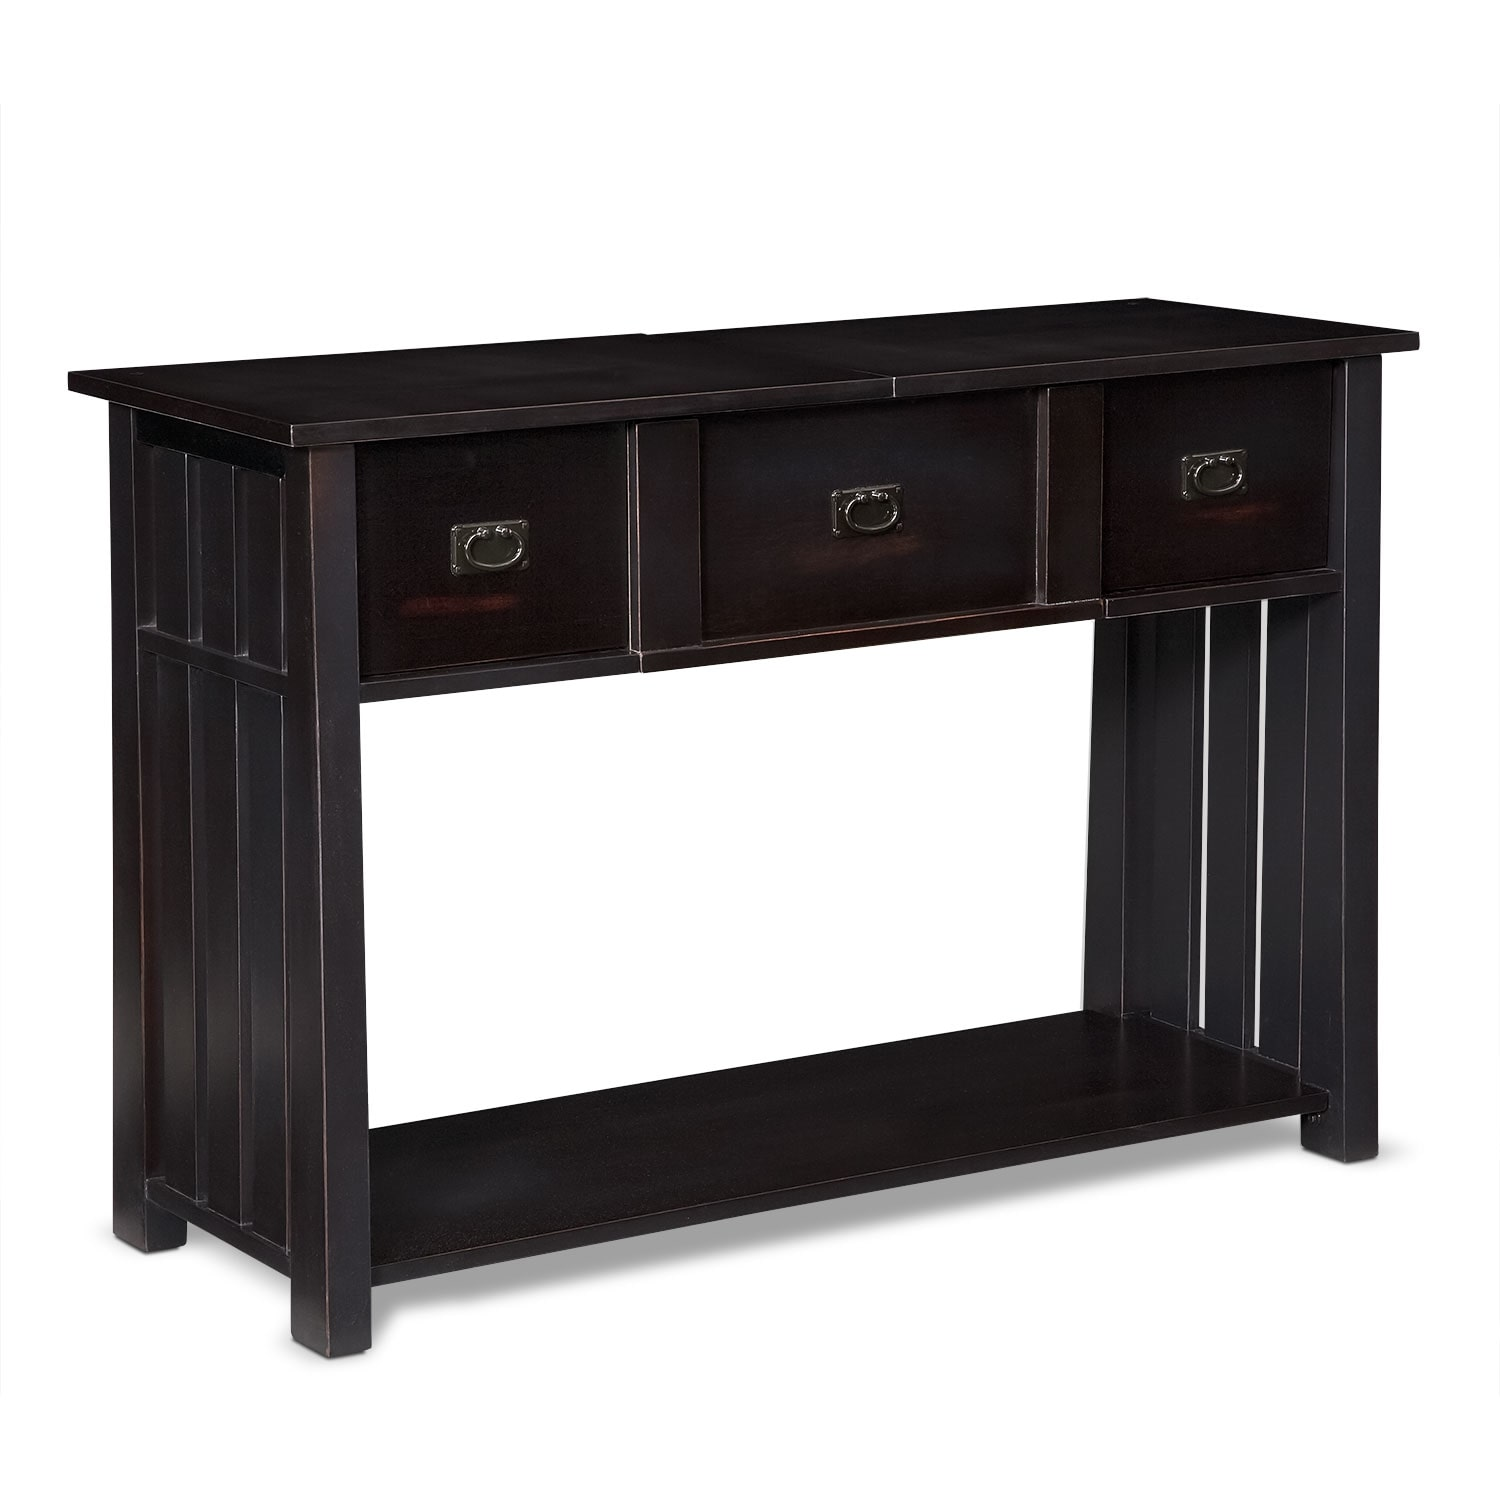 Tribute Sofa Table - Black